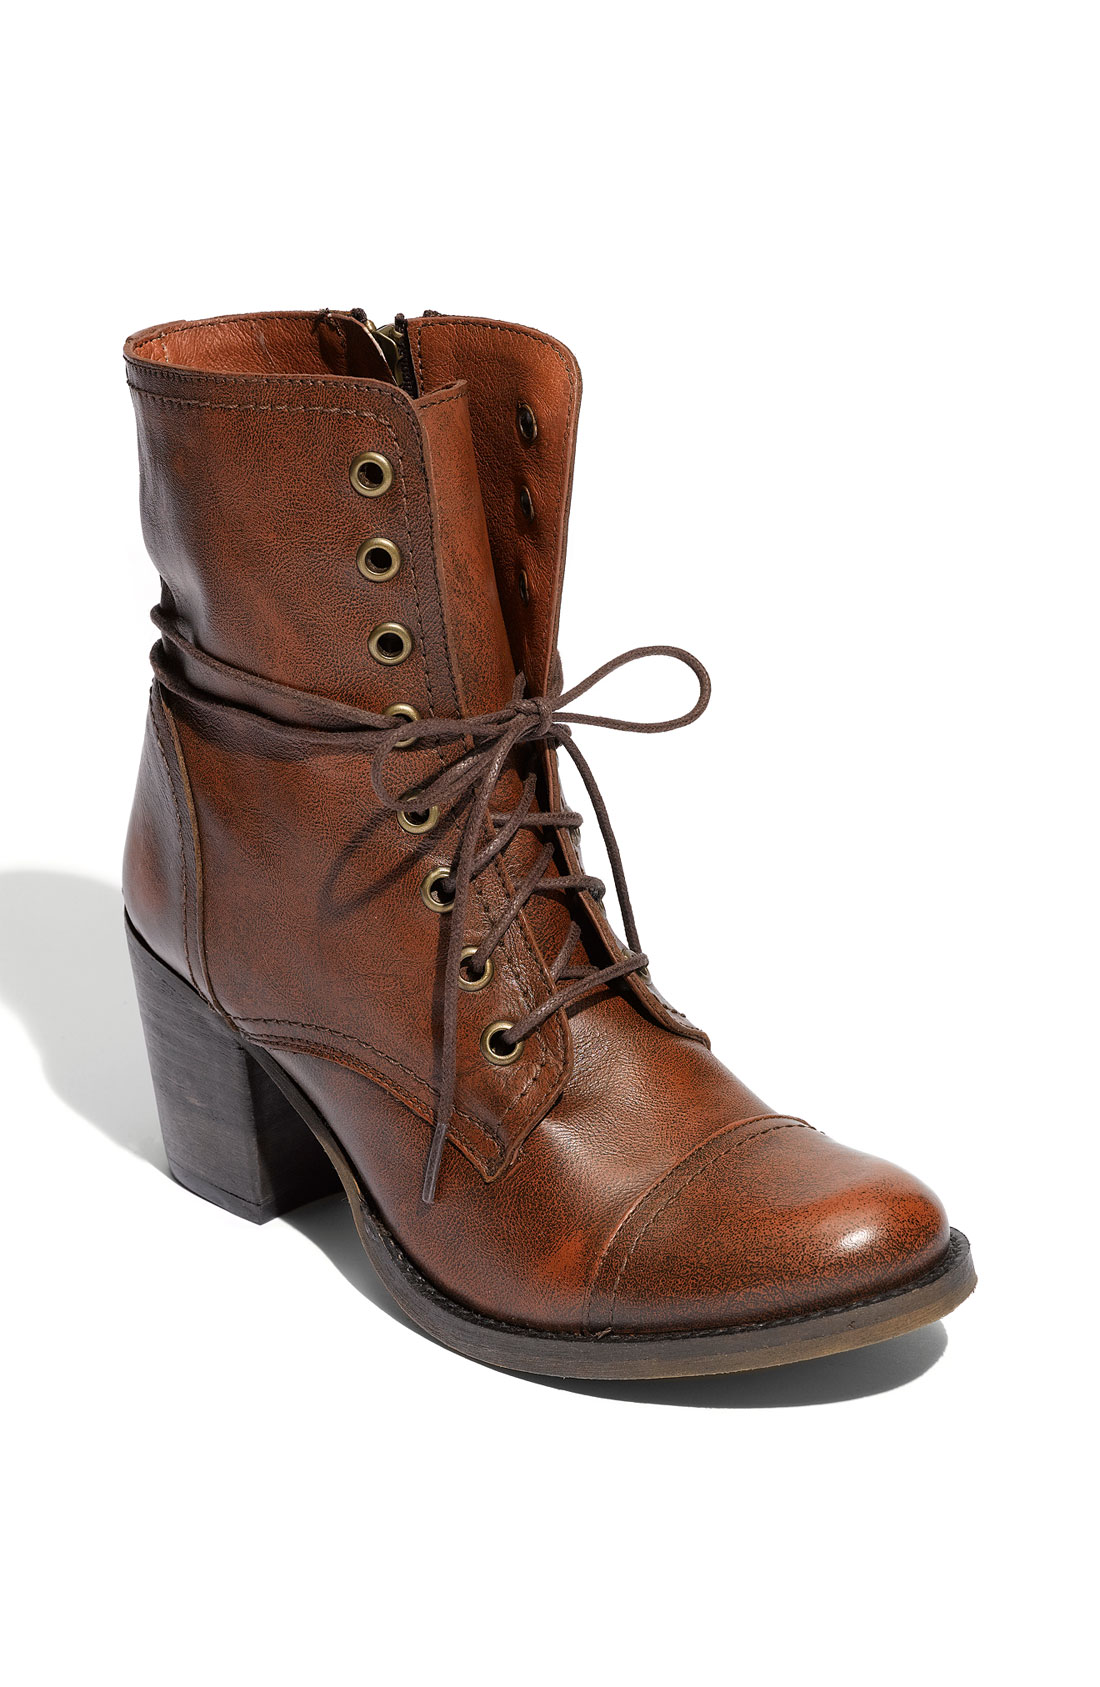 Steve Madden. 1,, likes · 6, talking about this · 6, were here. The Official Steve Madden Facebook Page.